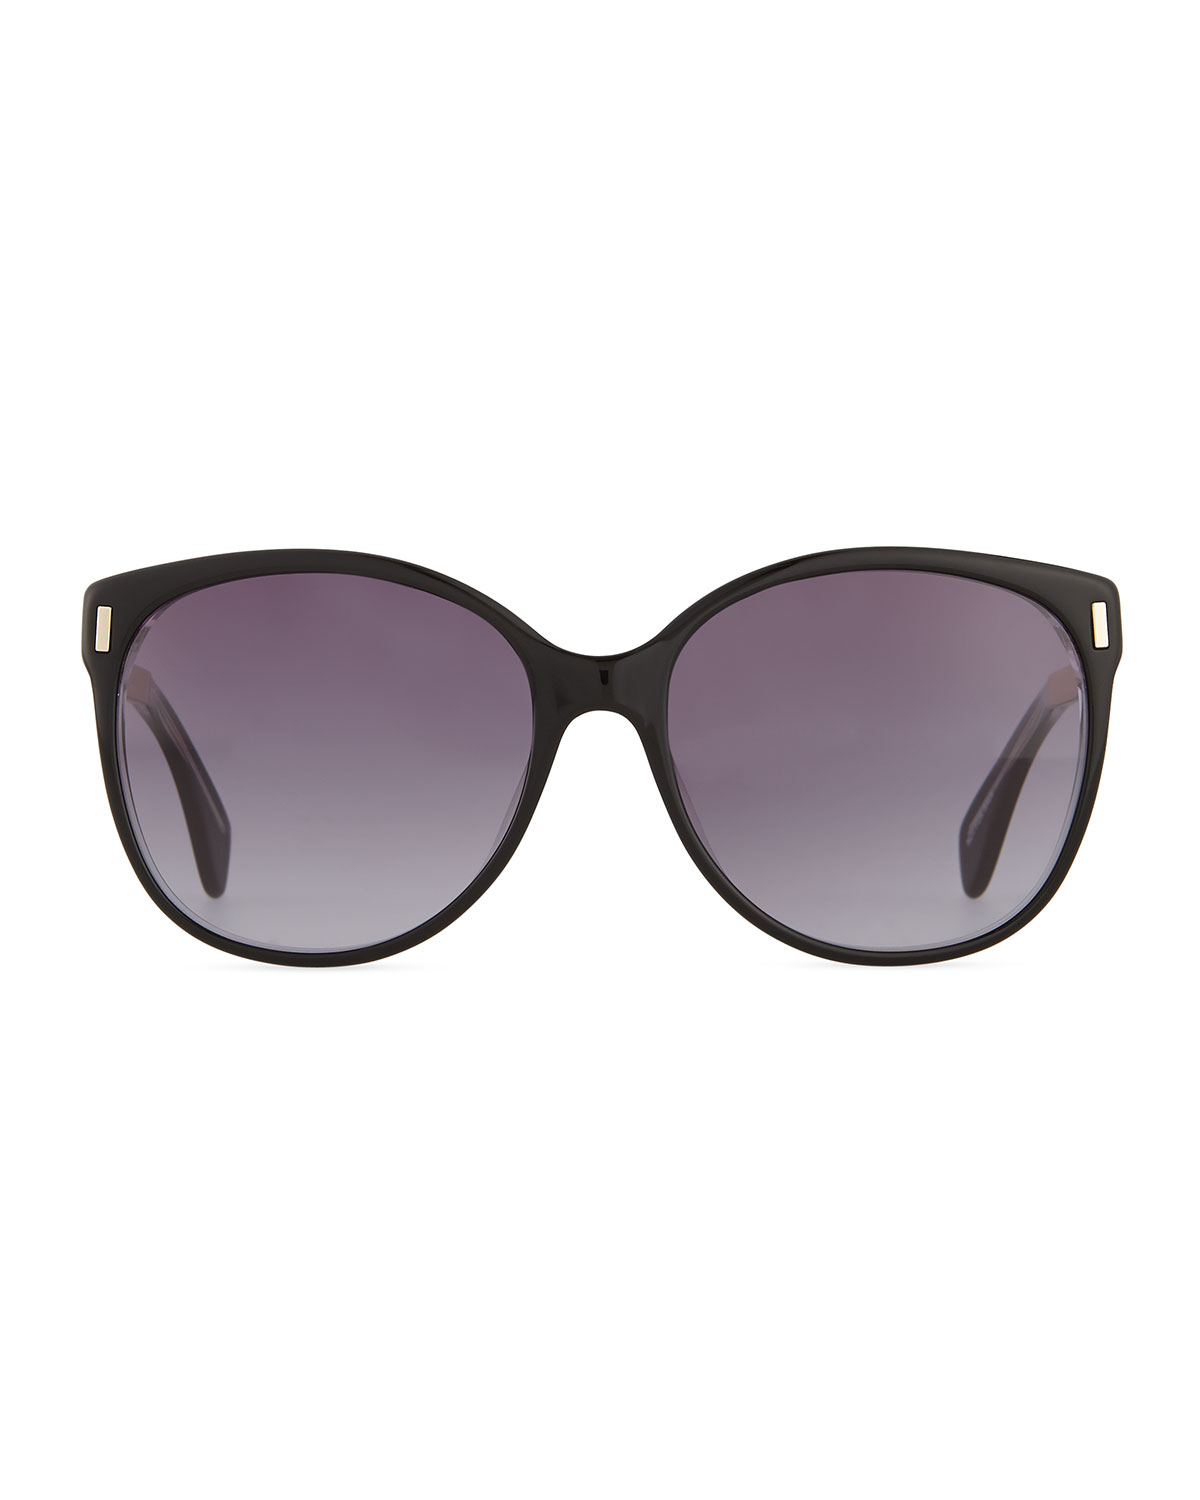 Marc by marc jacobs Clear-edge Butterfly Sunglasses in ...